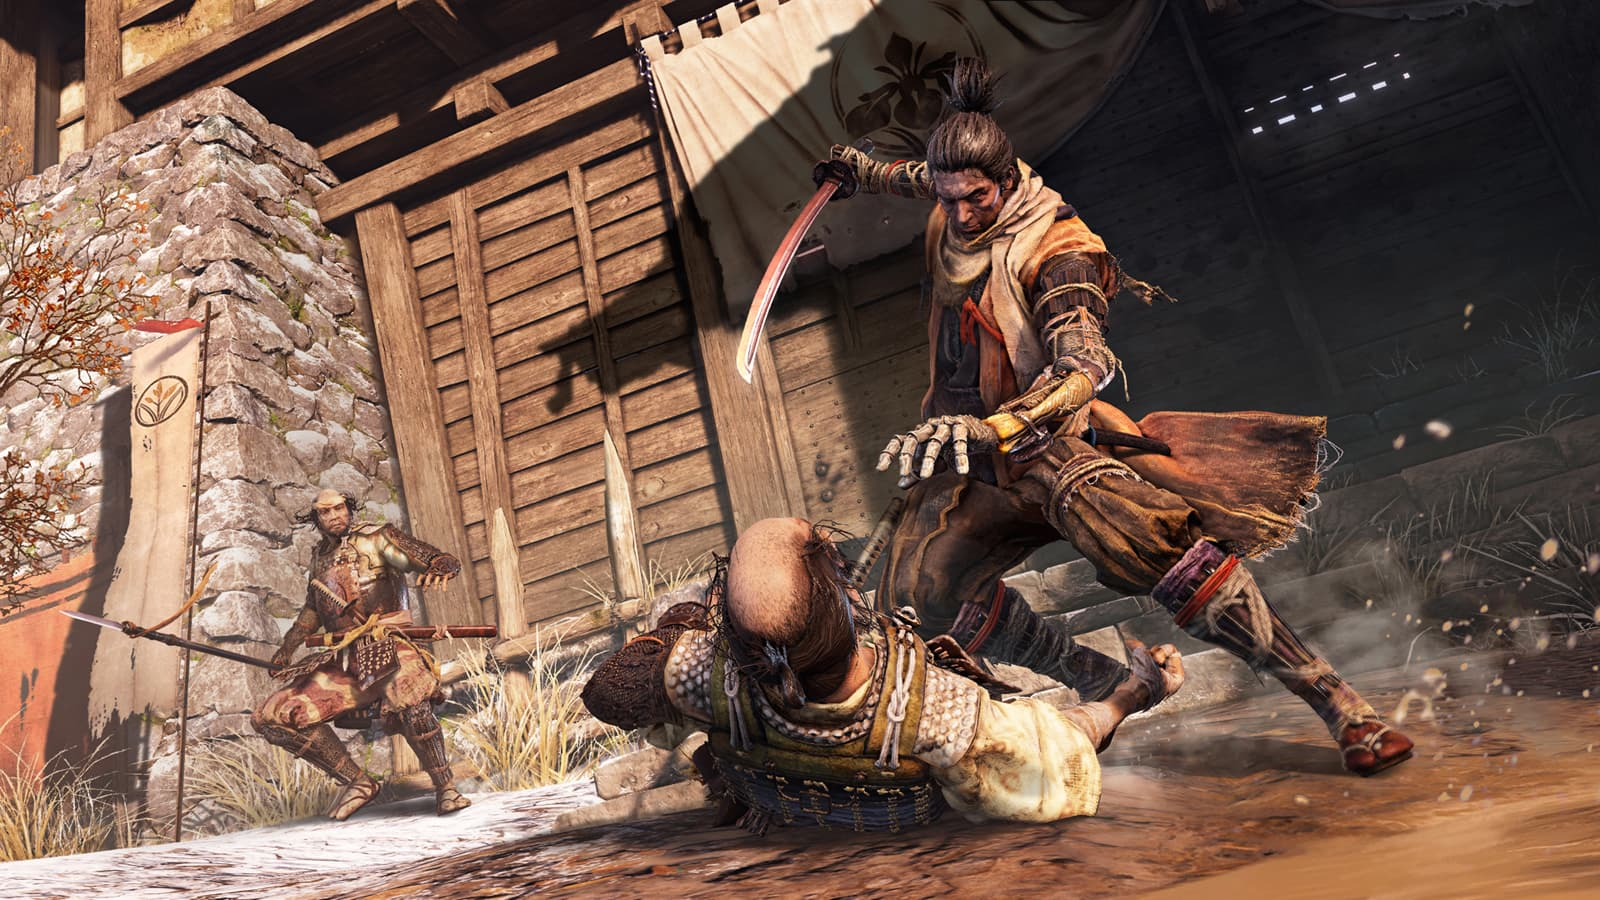 sekiro as Game of the Year  in Game Awards 2019